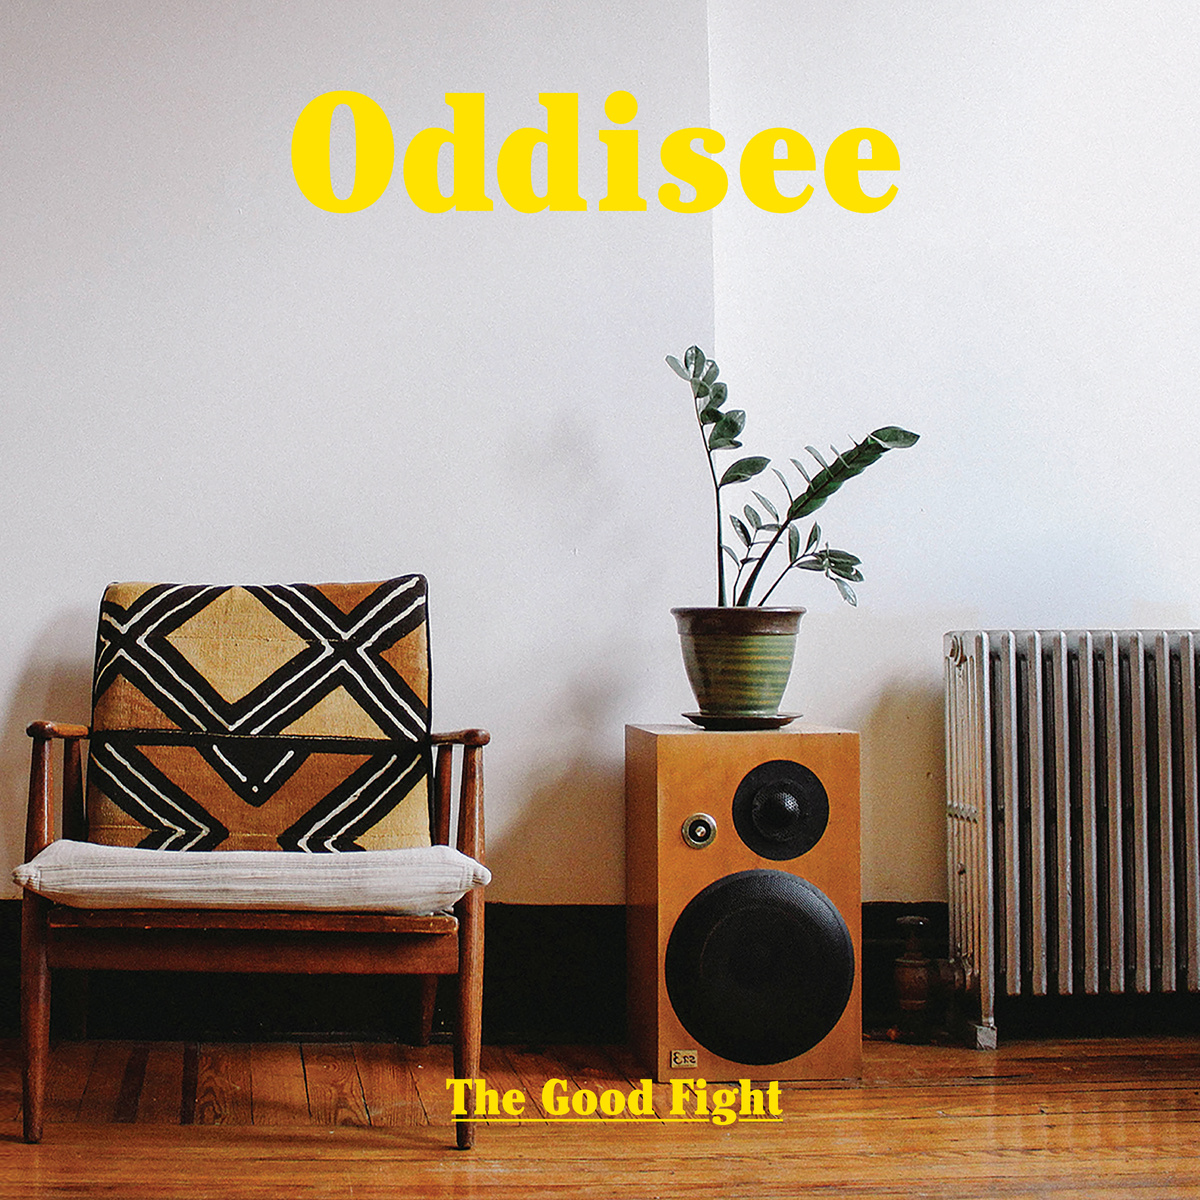 2. Oddisee - The Good Fight